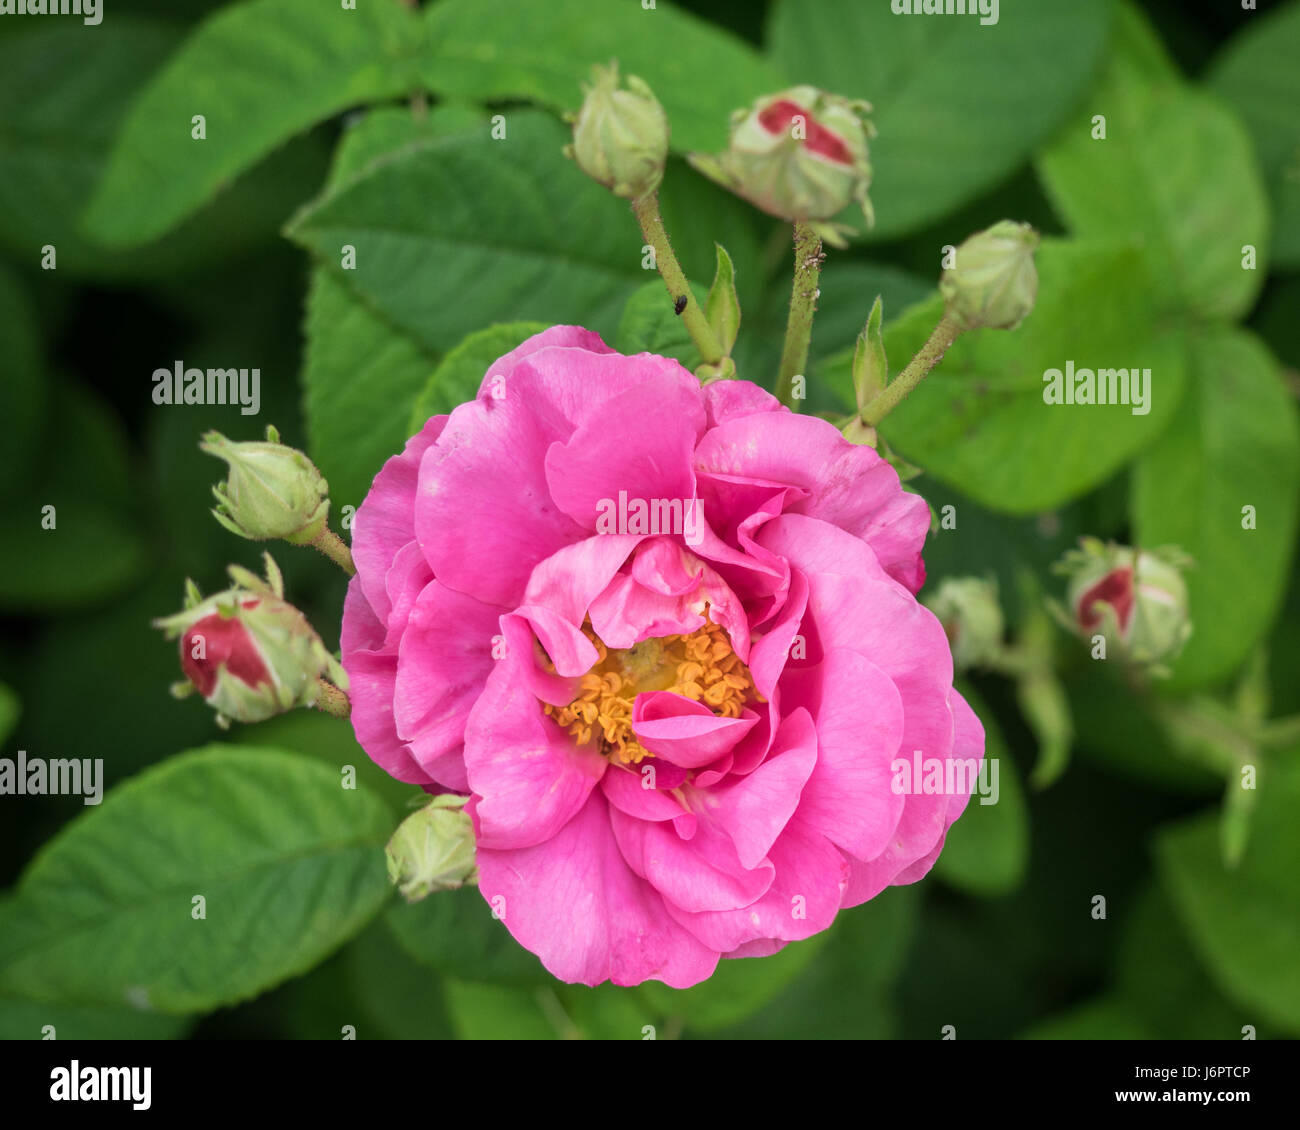 close up macro detail face on from above a pink red wild rose flower in full bloom blooming blossoming with few - Stock Image